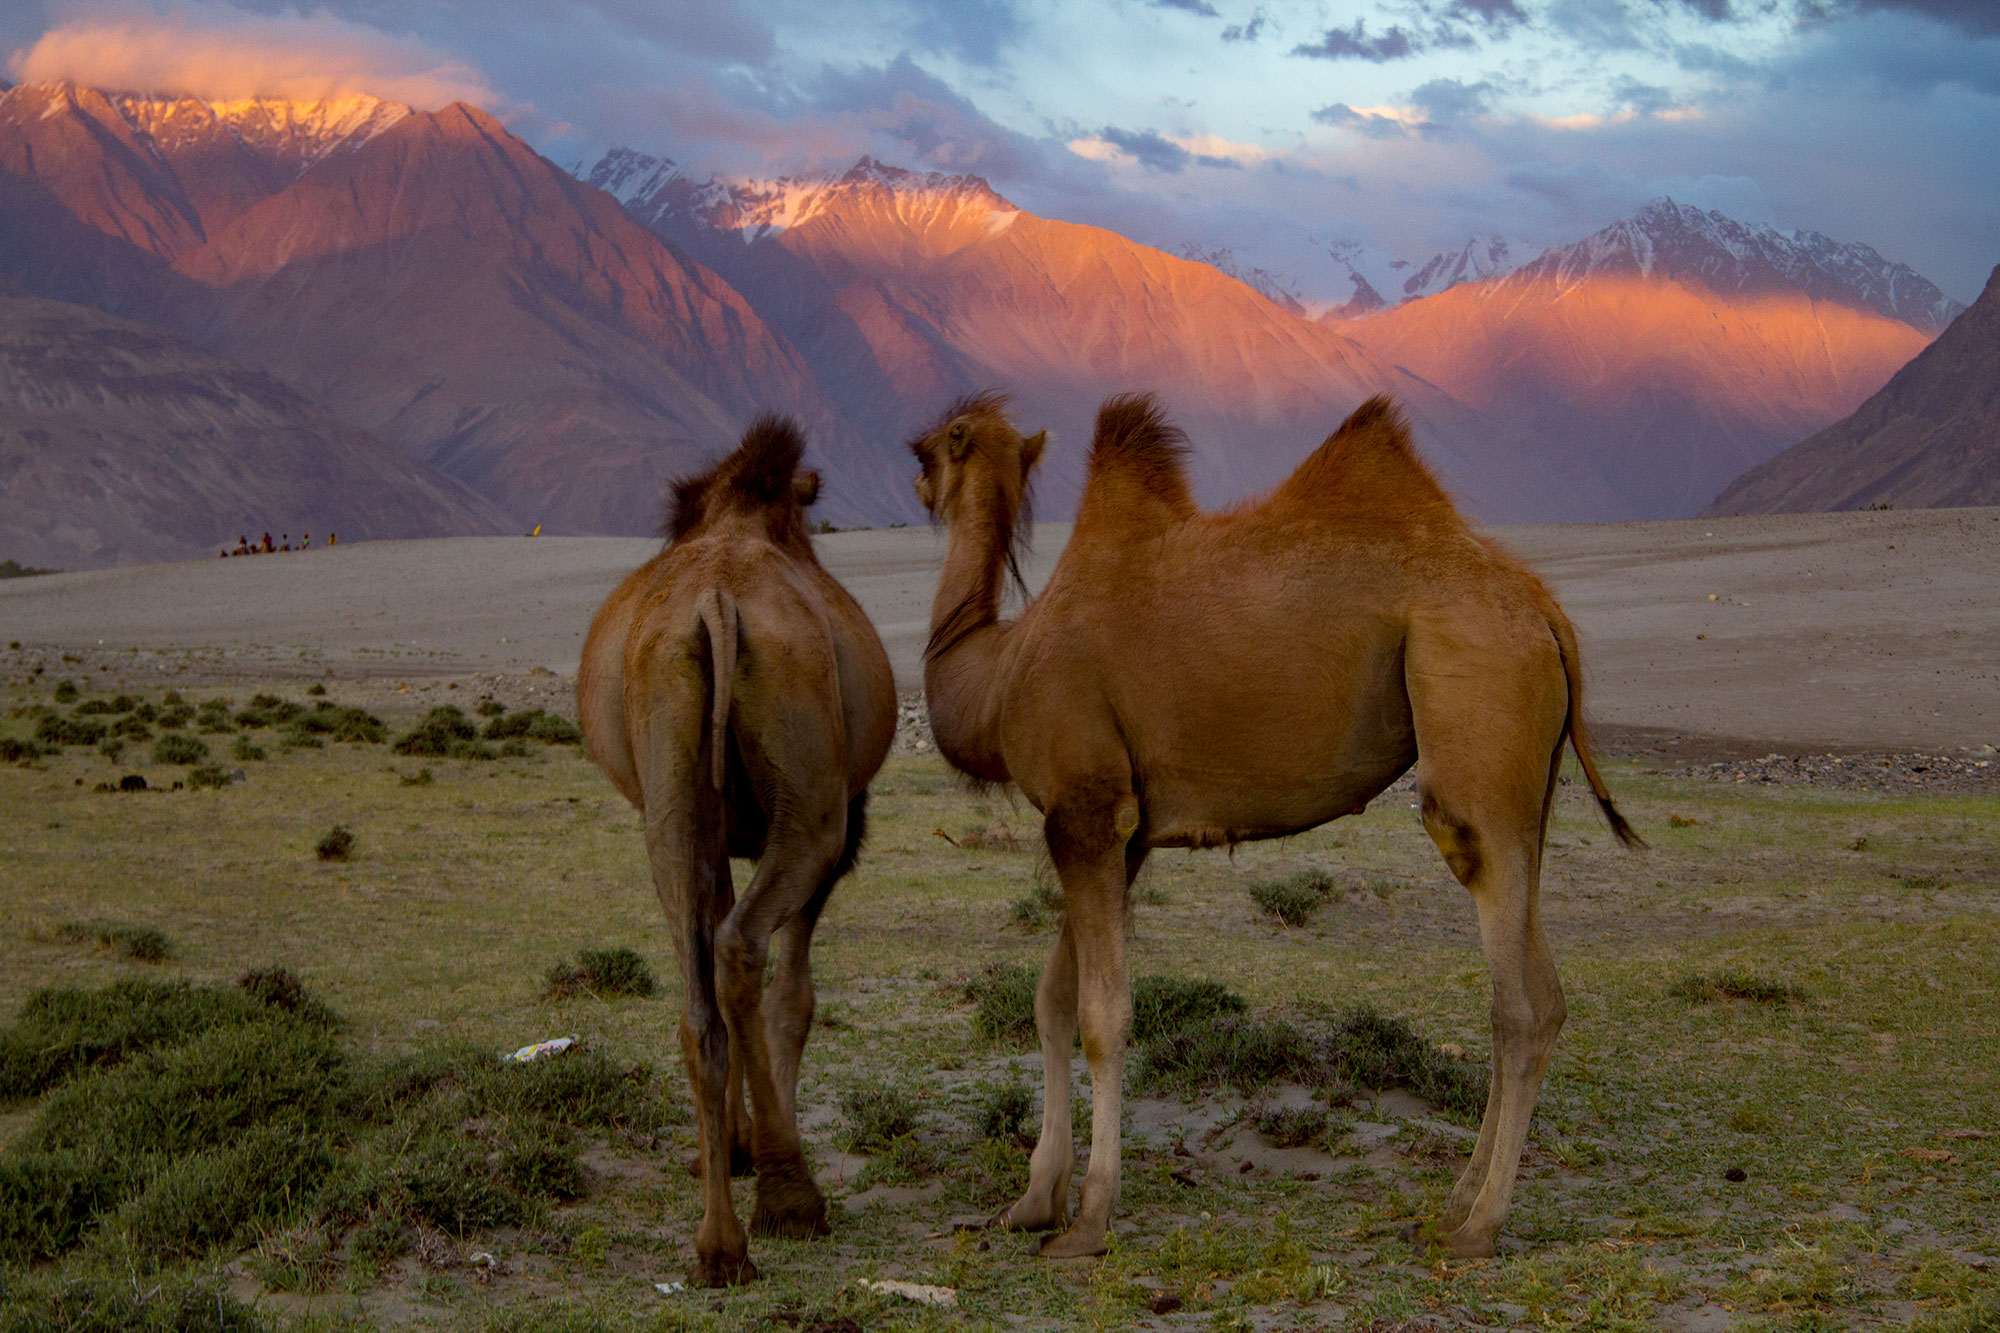 Bactrim Camels in the Nubra Valley